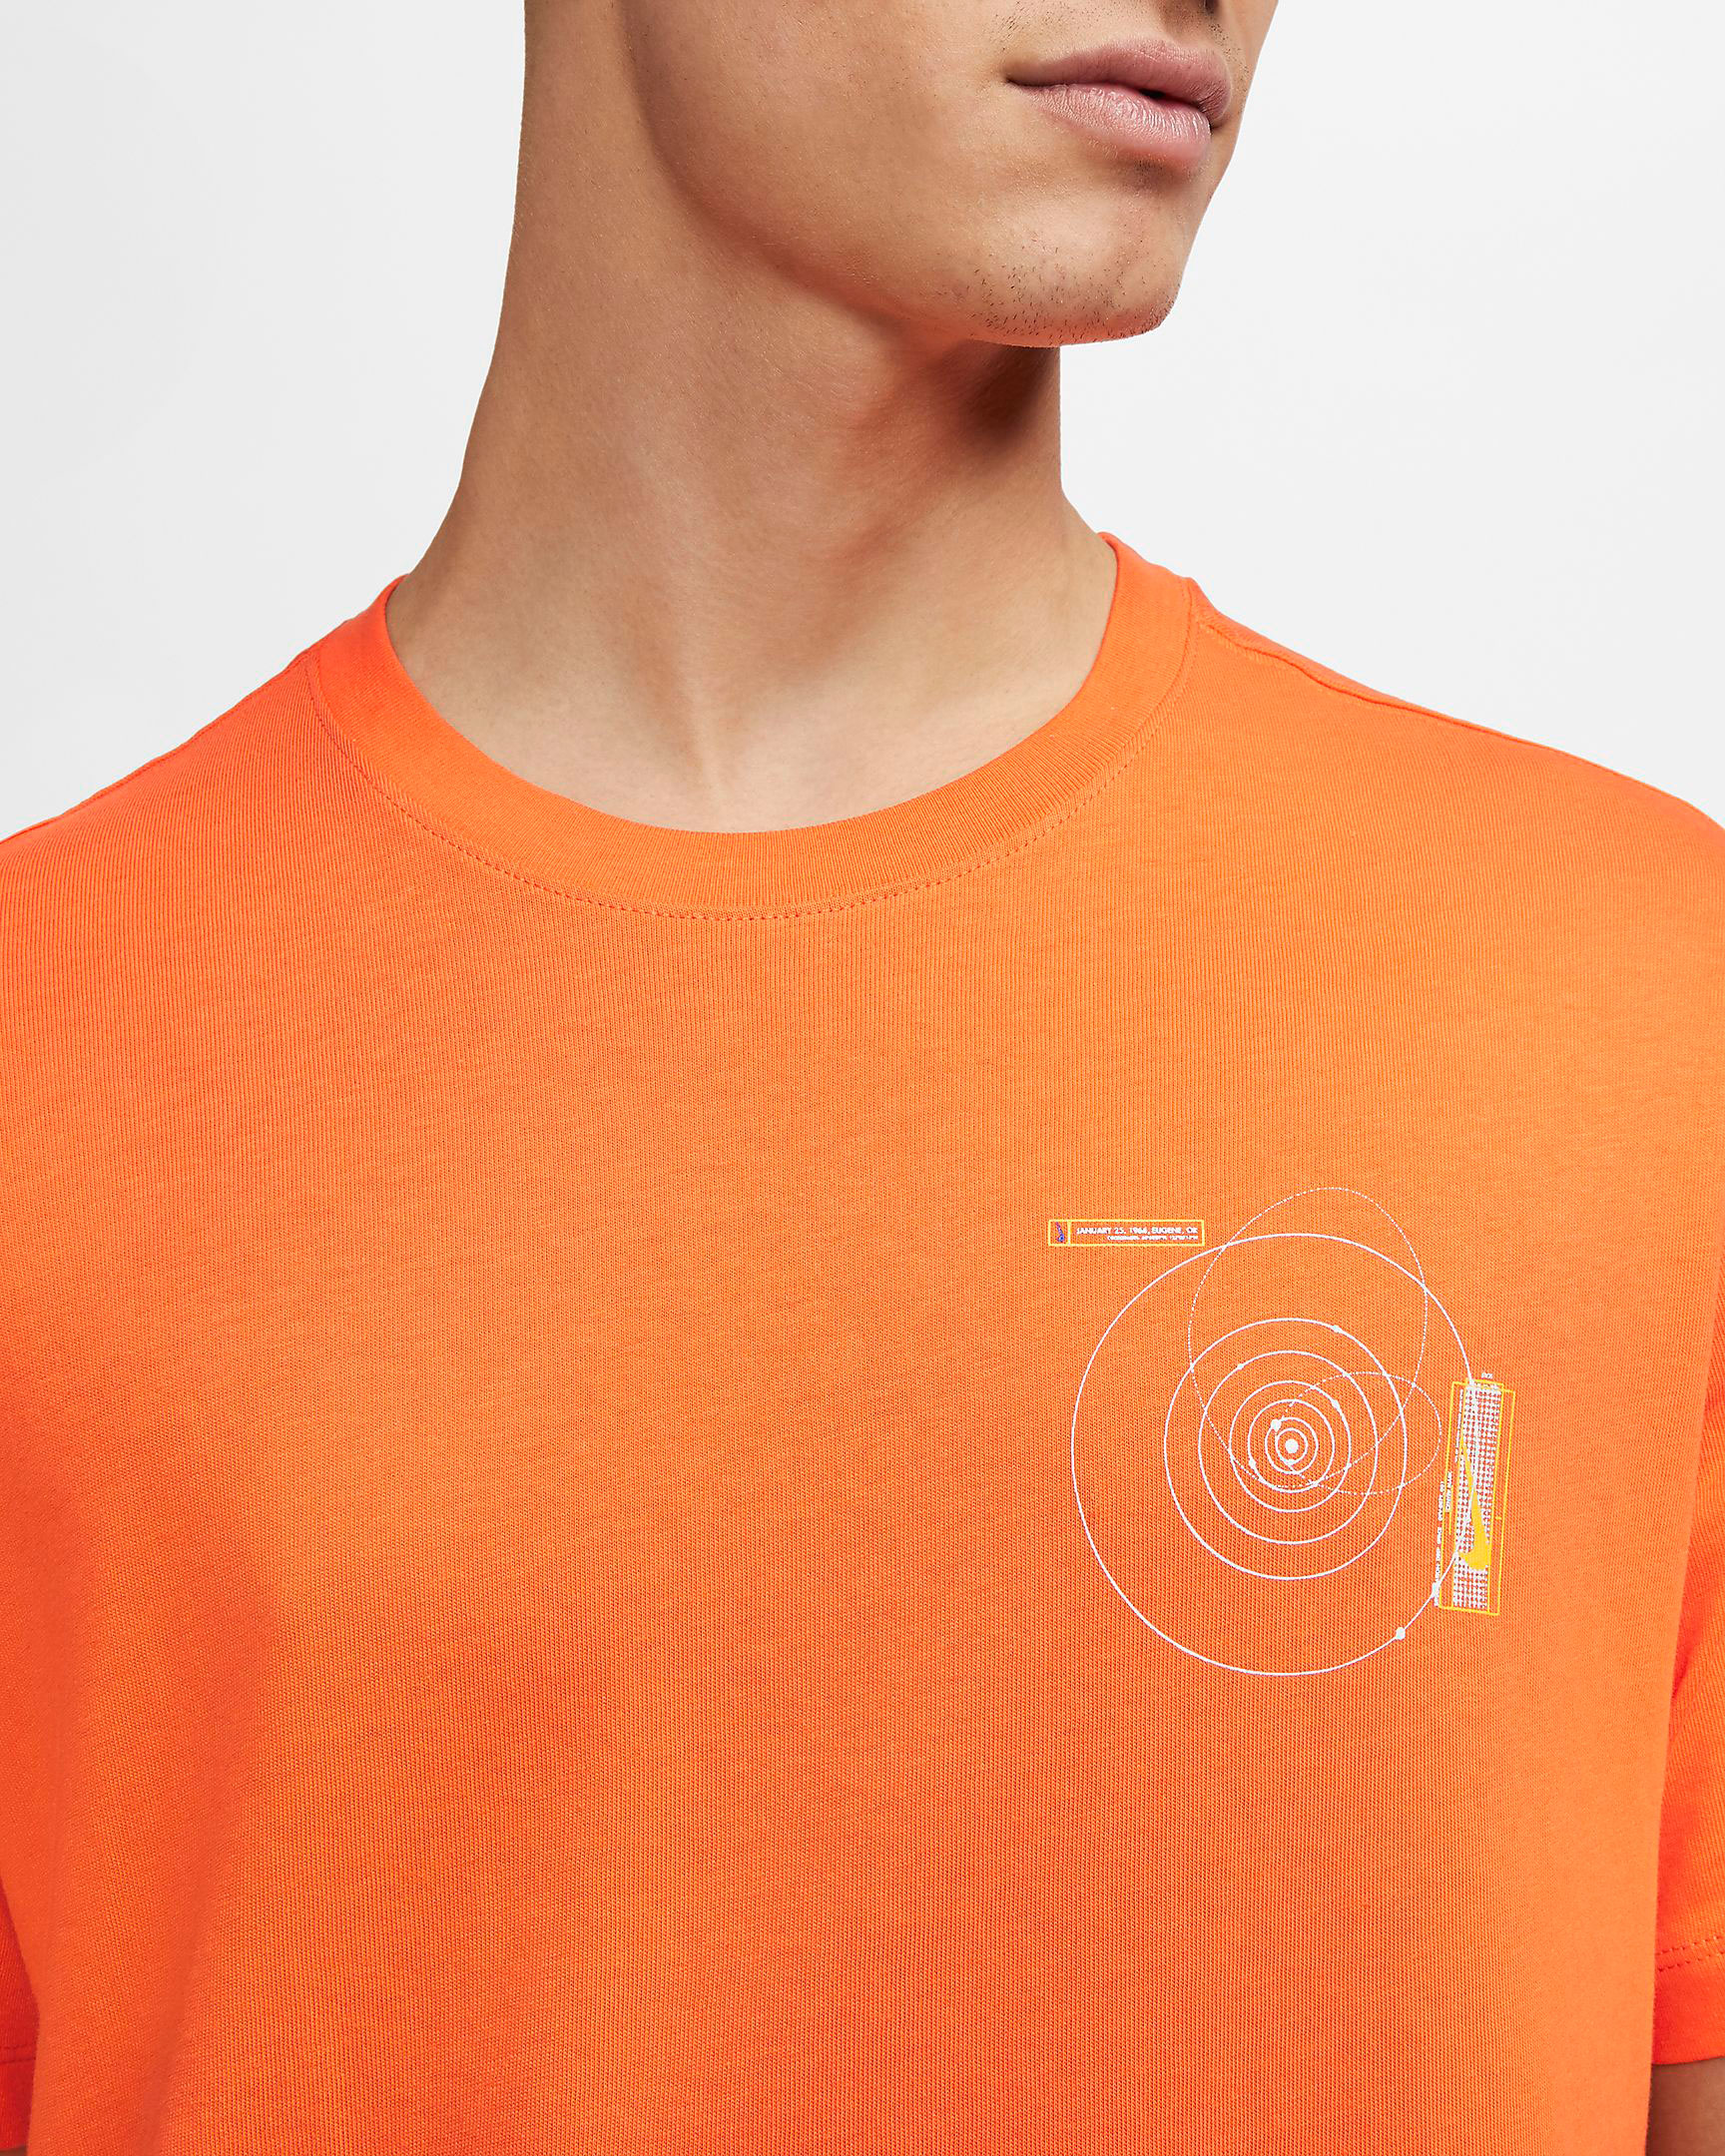 nike-supernova-shirt-orange-3